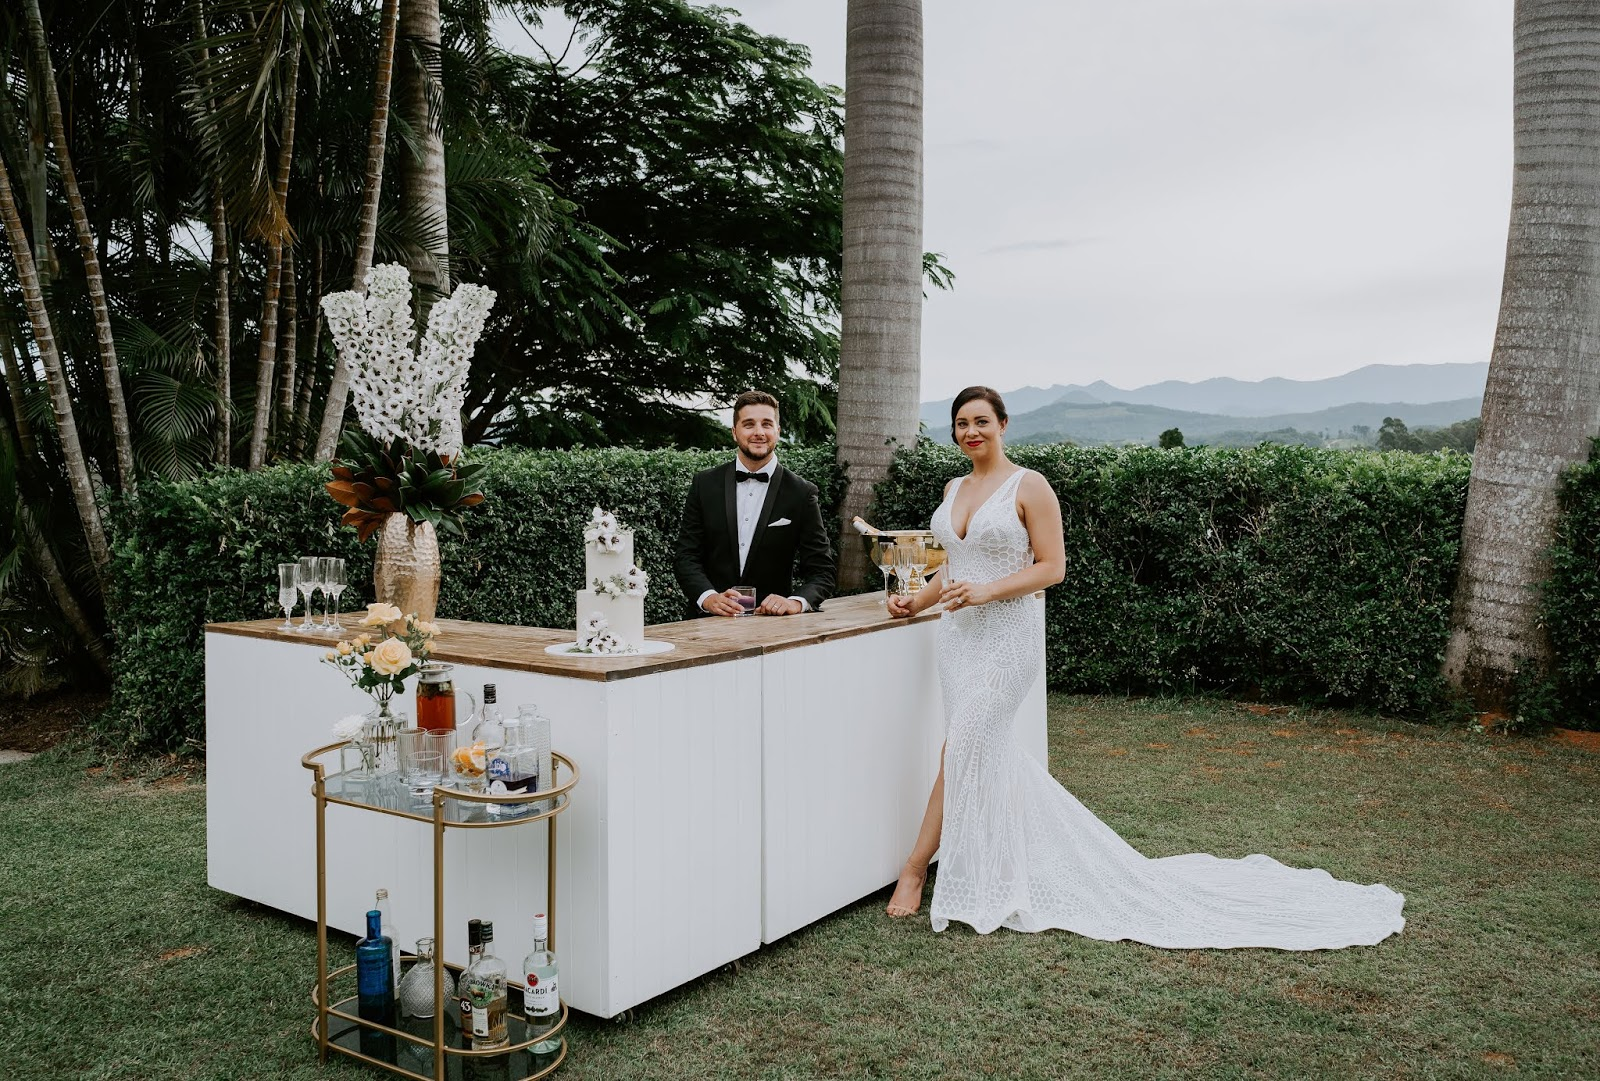 STYLED: THE SKY GARDEN | HAMPTONS STYLED WEDDING INSPIRATION NORTHERN NSW